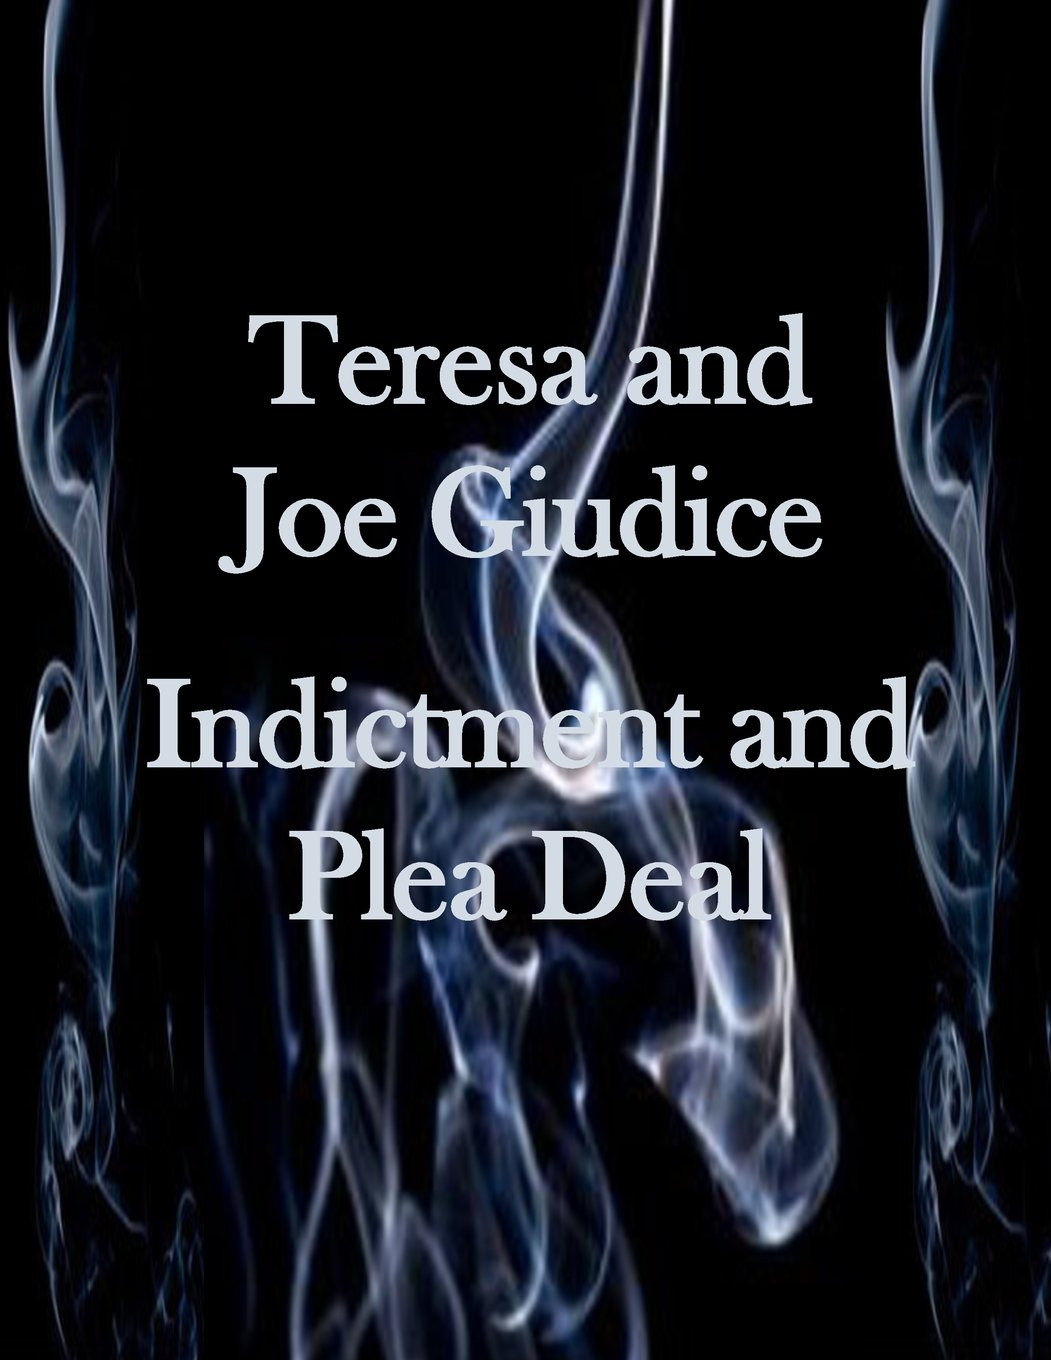 Teresa and Joe Guidice Indictment and Plea Deal